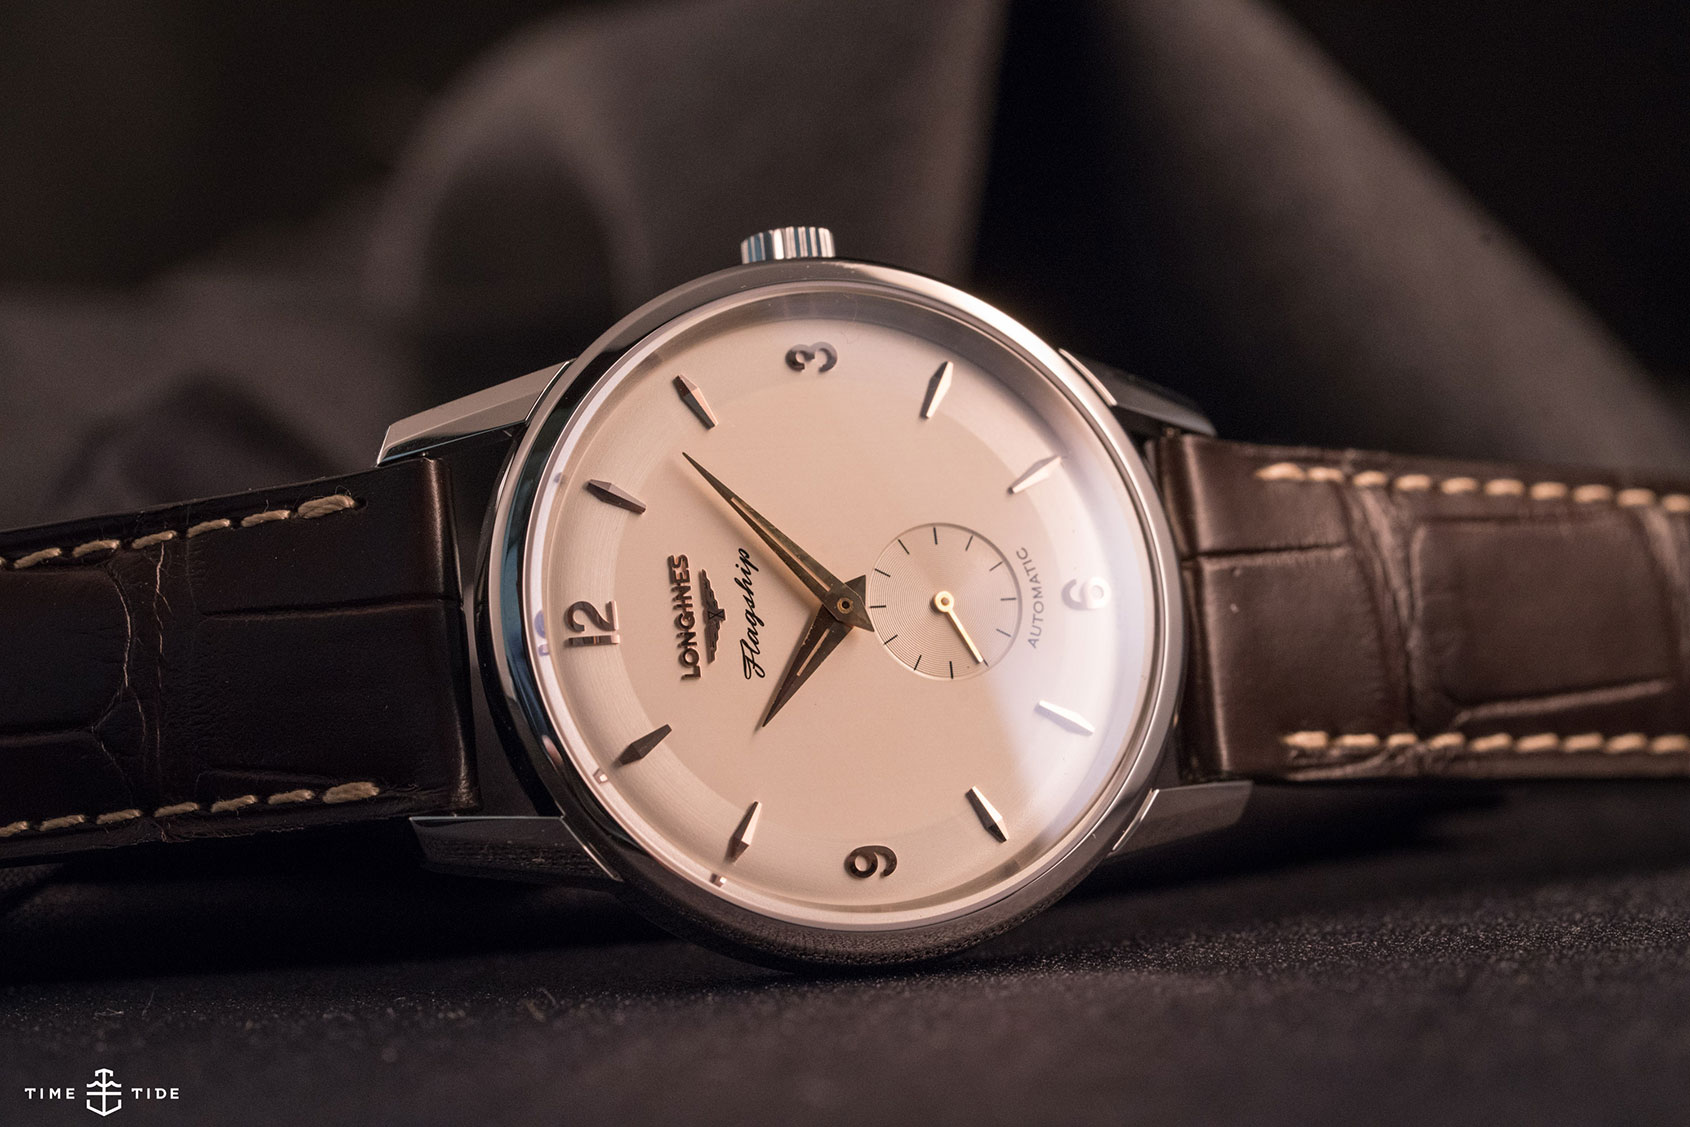 Another look at the Longines Flagship Heritage 60th Anniversary